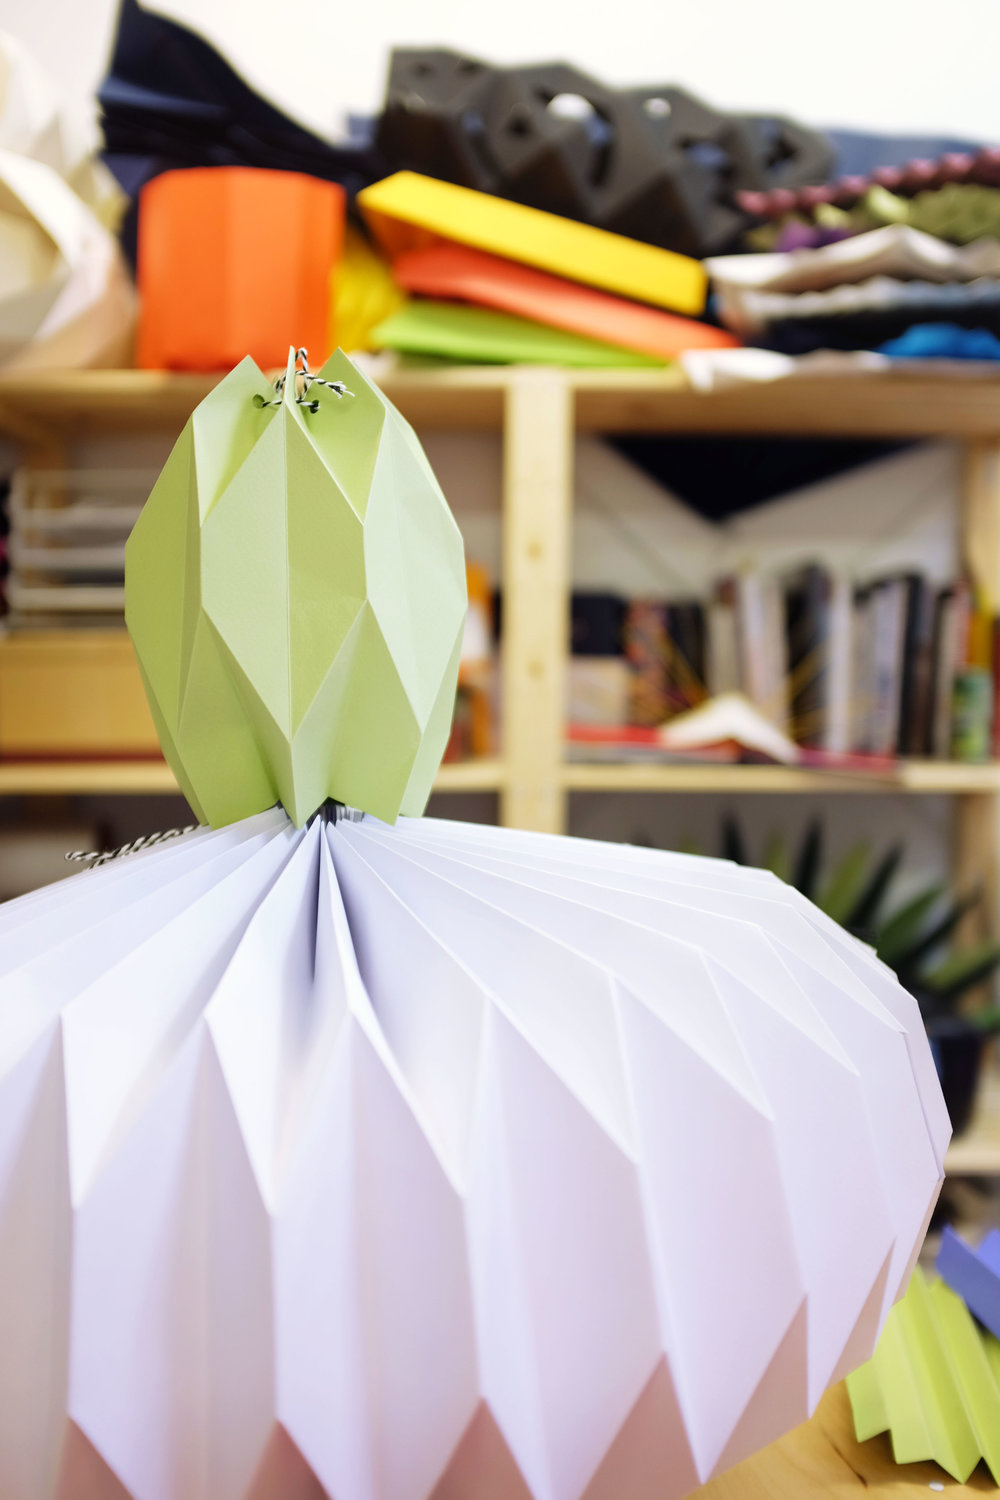 miss-cloudy-origami-workshop-paper-lamp-folding-new-studio-montreal-3.jpg